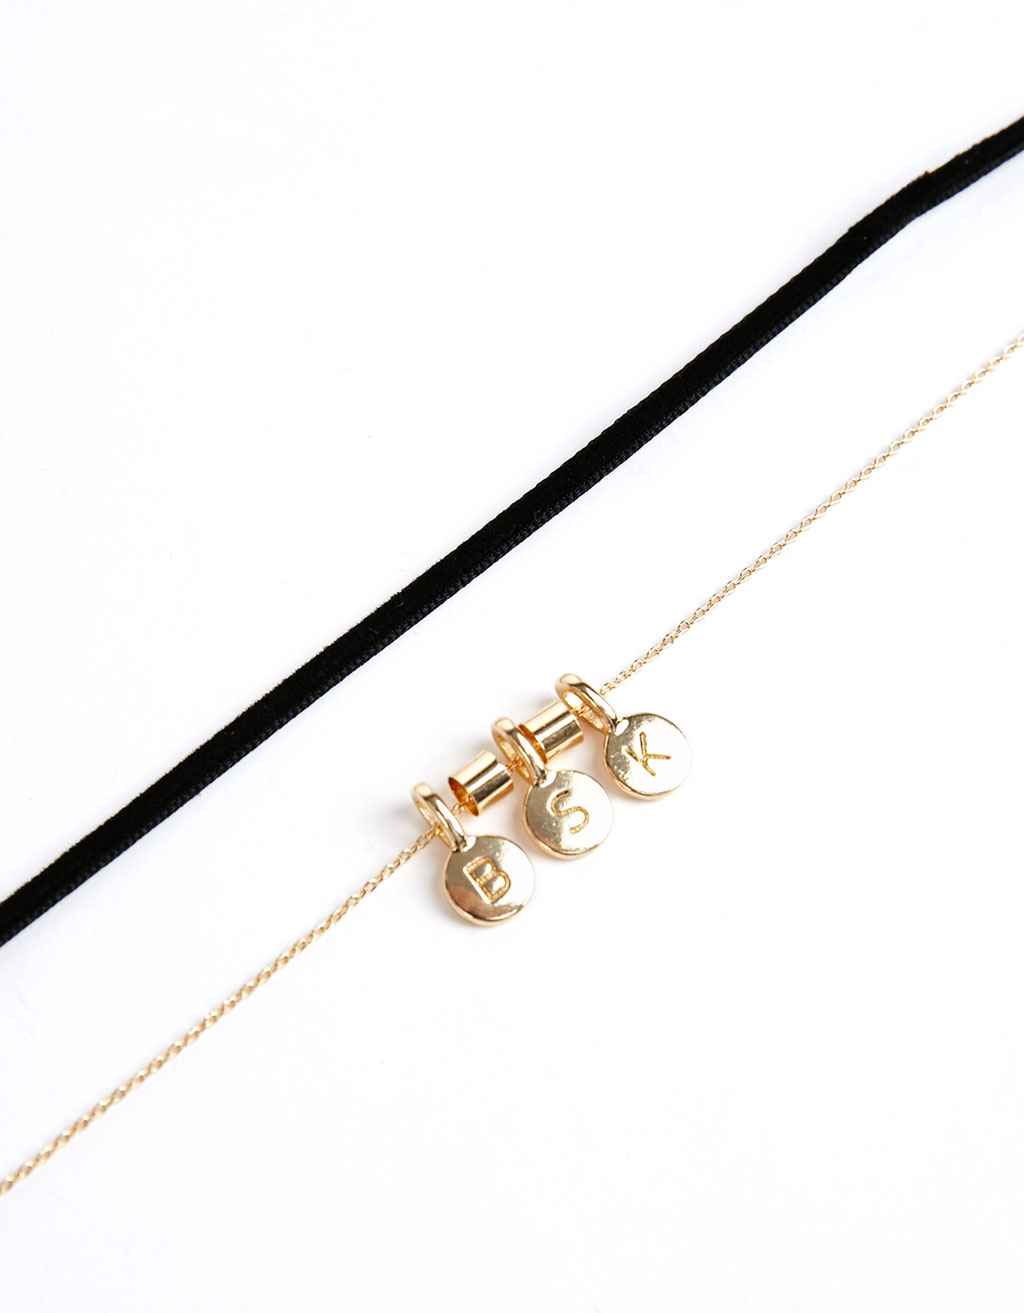 Choker with letters chain